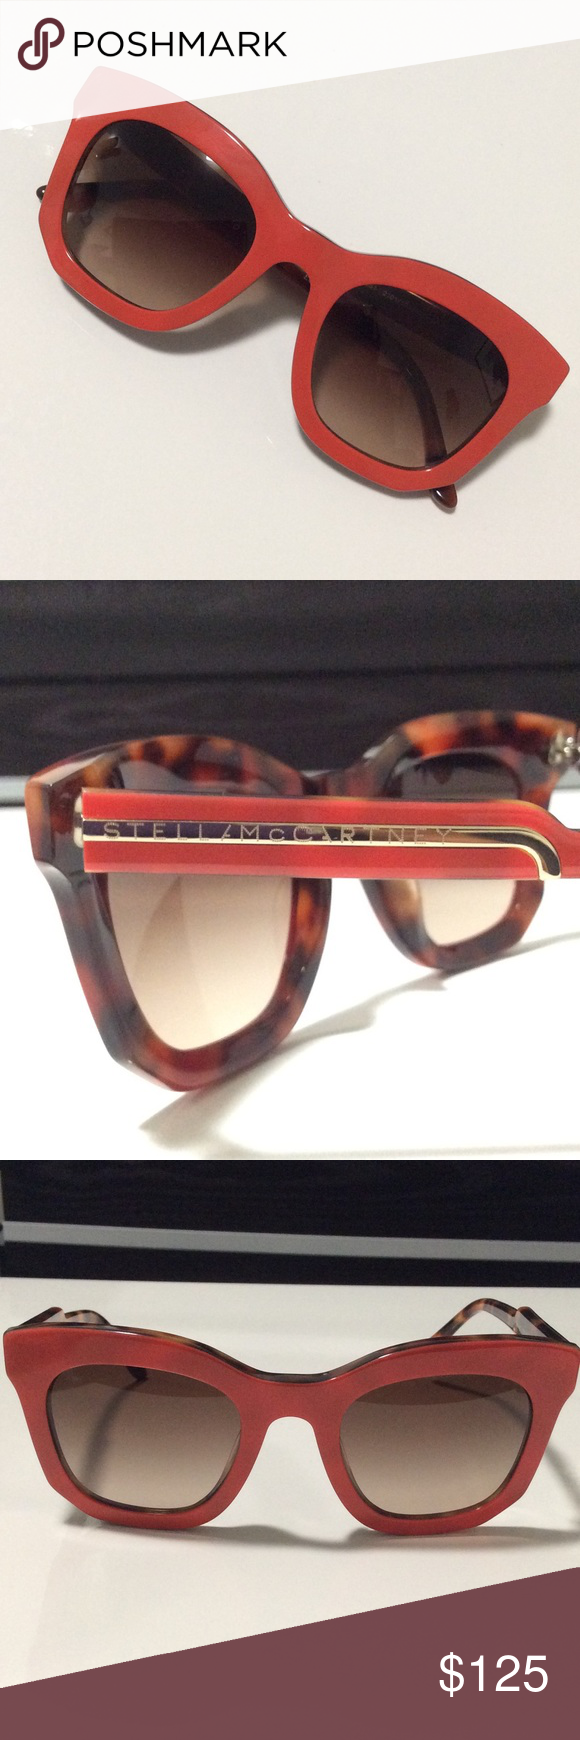 cd880a929ec Stella McCartney Sunglasses Oversized square Stella McCartney sunglasses in  orange and tortoise with notched arm detail. NEVER BEEN WORN!